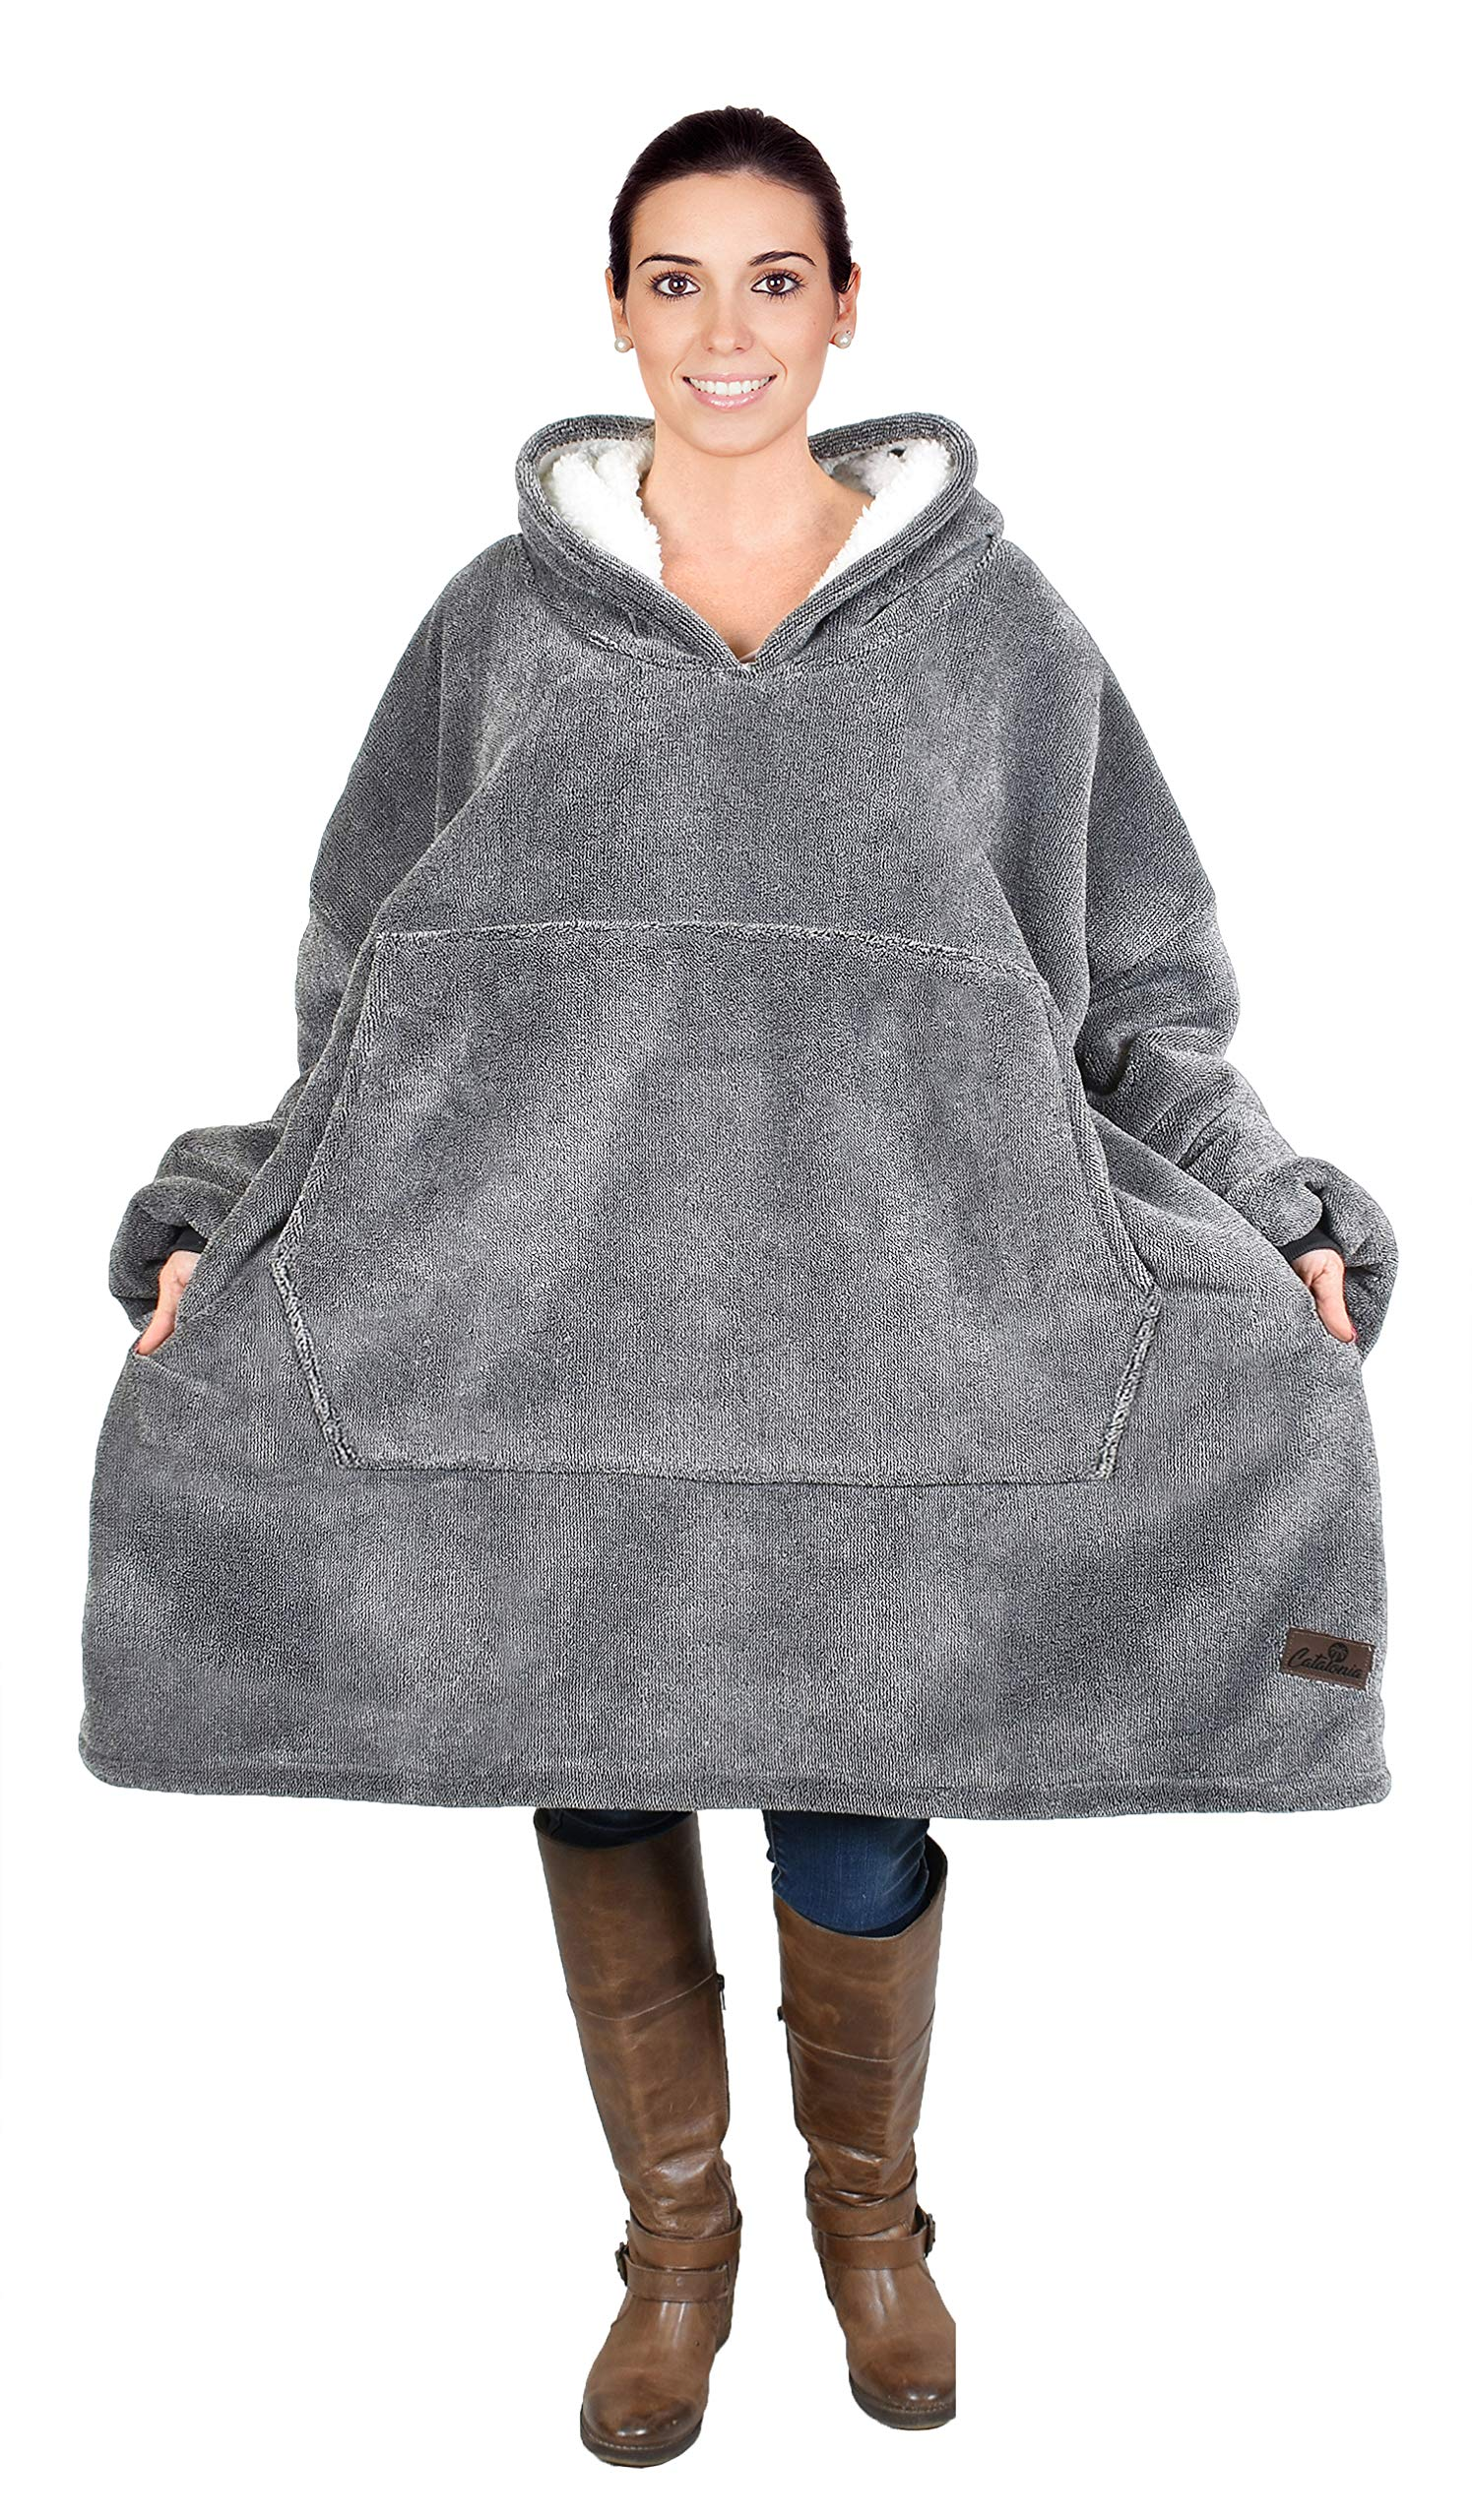 Catalonia Oversized Hoodie Blanket Sweatshirt,Super Soft Warm Comfortable Sherpa Giant Pullover with Large Front Pocket,for Adults Men Women Teenagers Kids, Ash by Catalonia